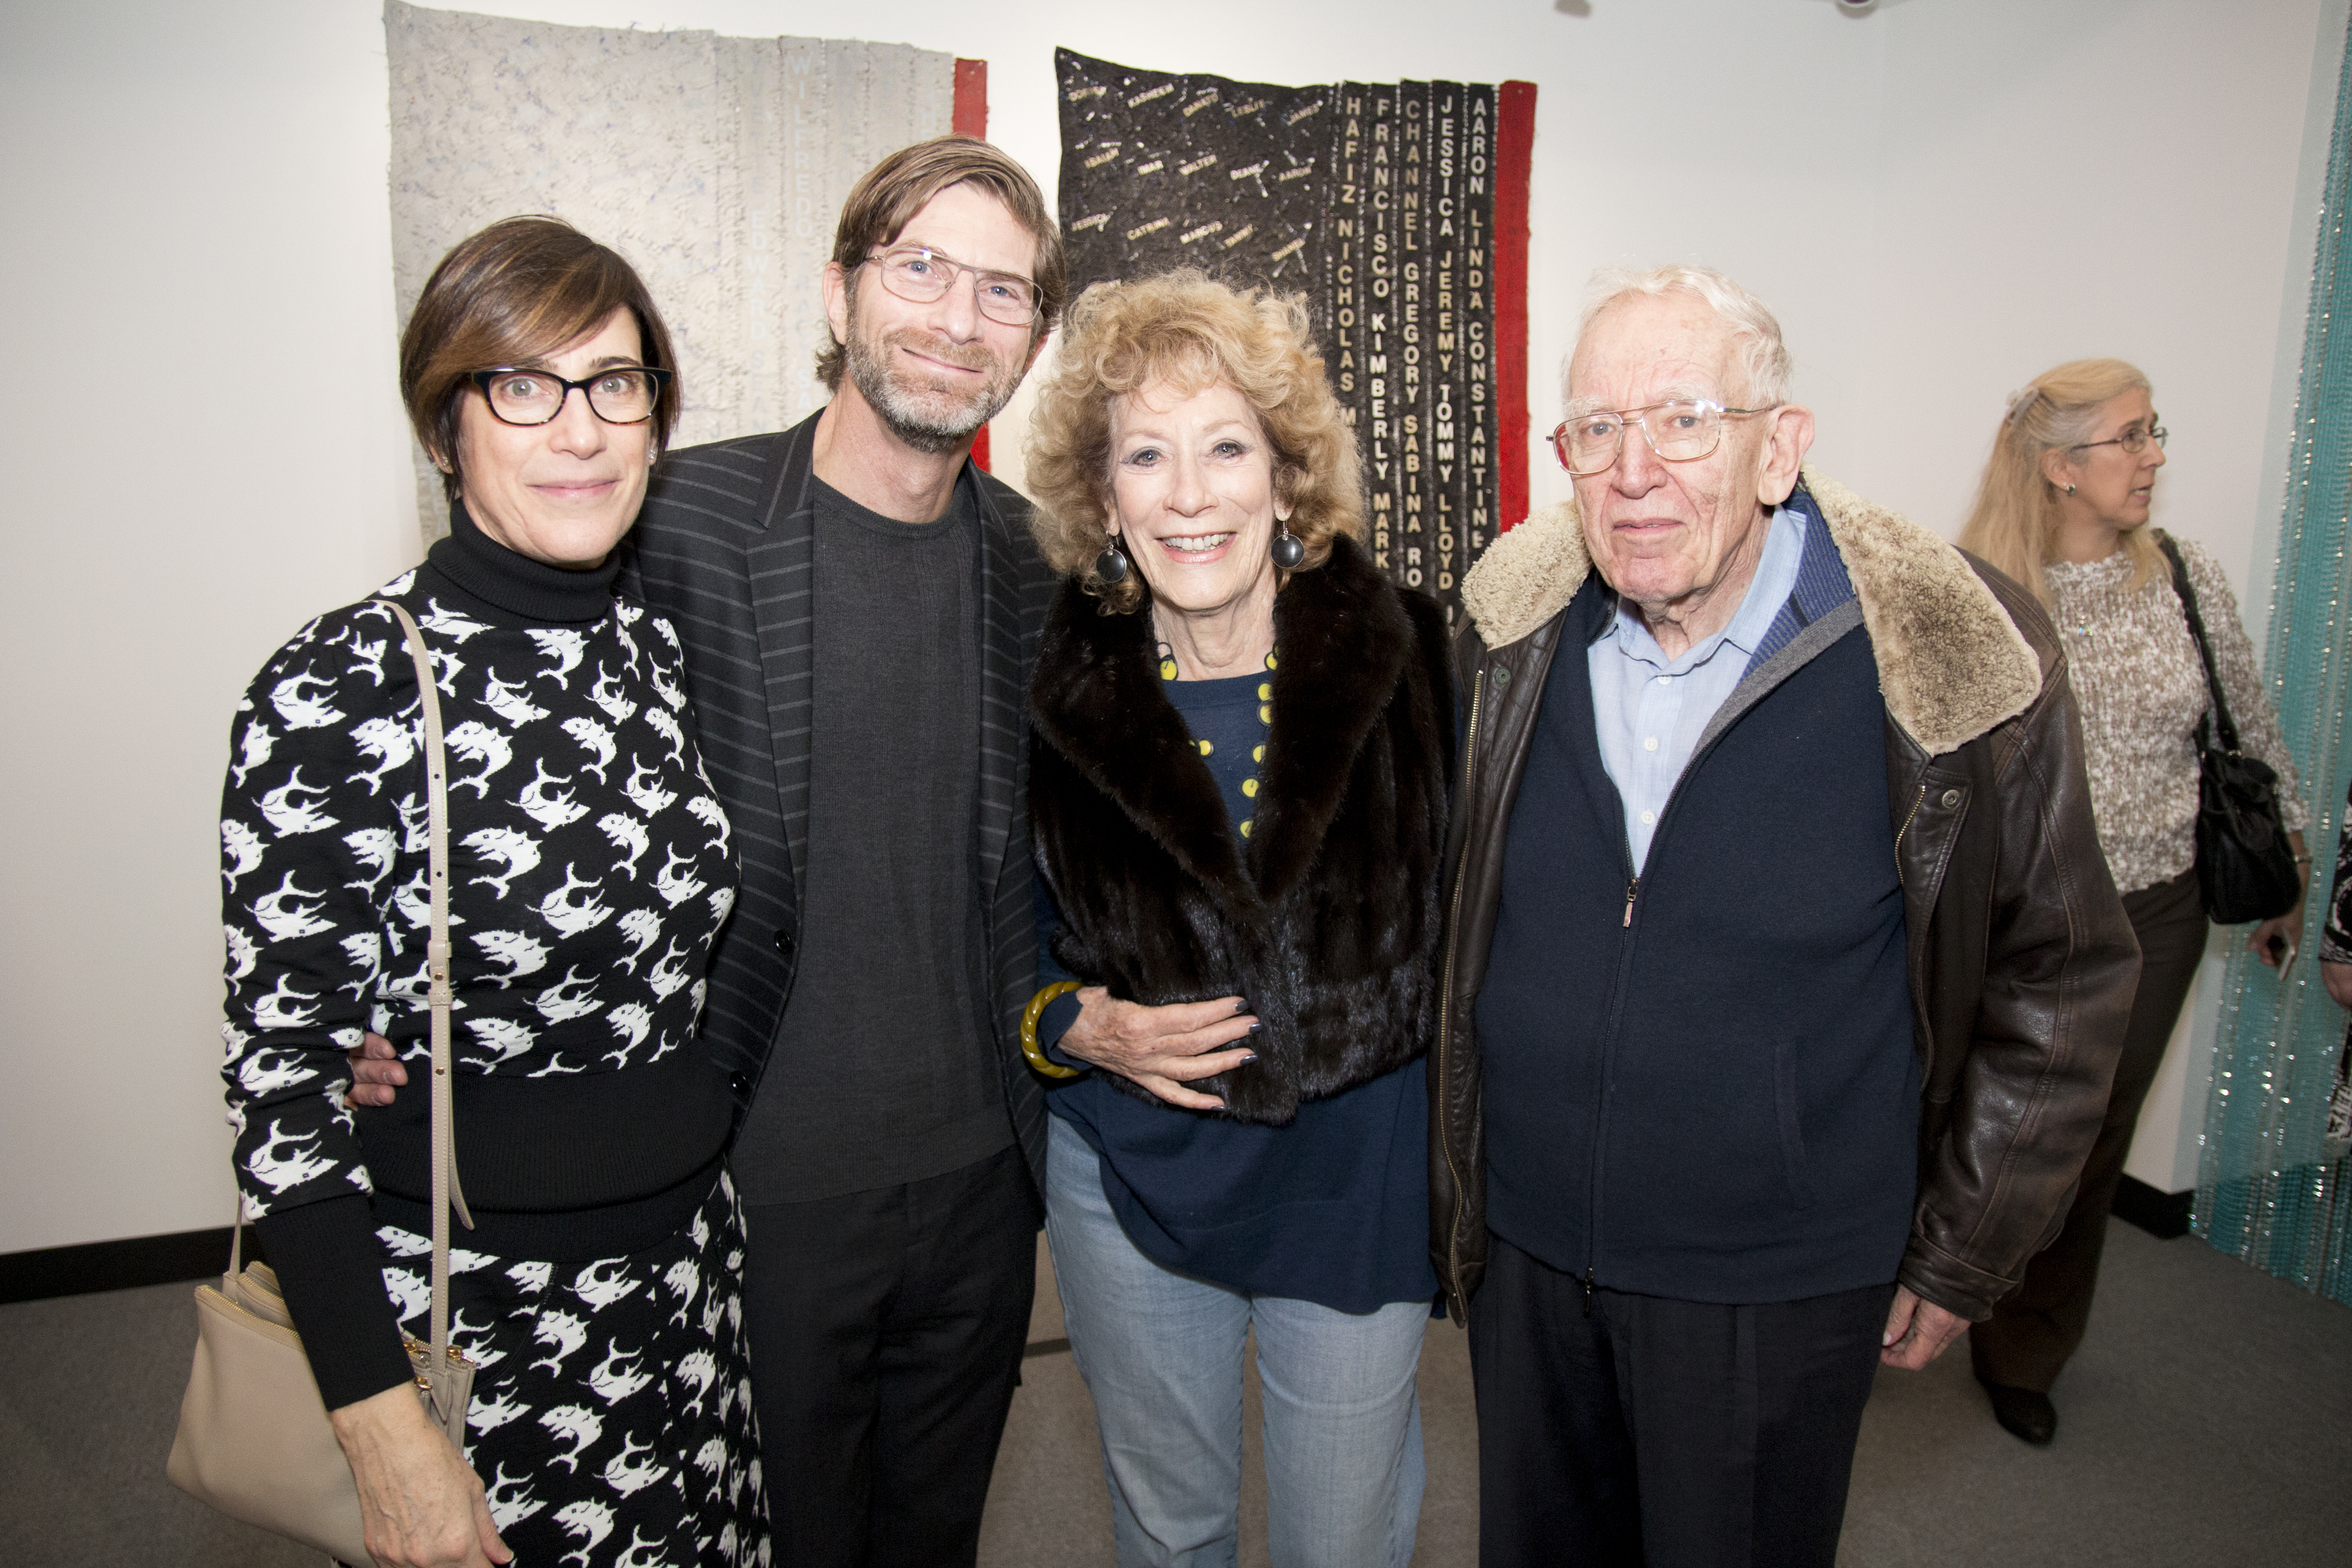 Madeleine Grynsztejn, Pritzker Director of the Museum of Contemporary Art Chicago, Tom Shapiro, Bette Cerf Hill, Bruce Sagan, and Joan Barry (in background) in front of Howardena Pindell's Separate but Equal Genocide/AIDS. Image by Erik Kommer December 2, 2016